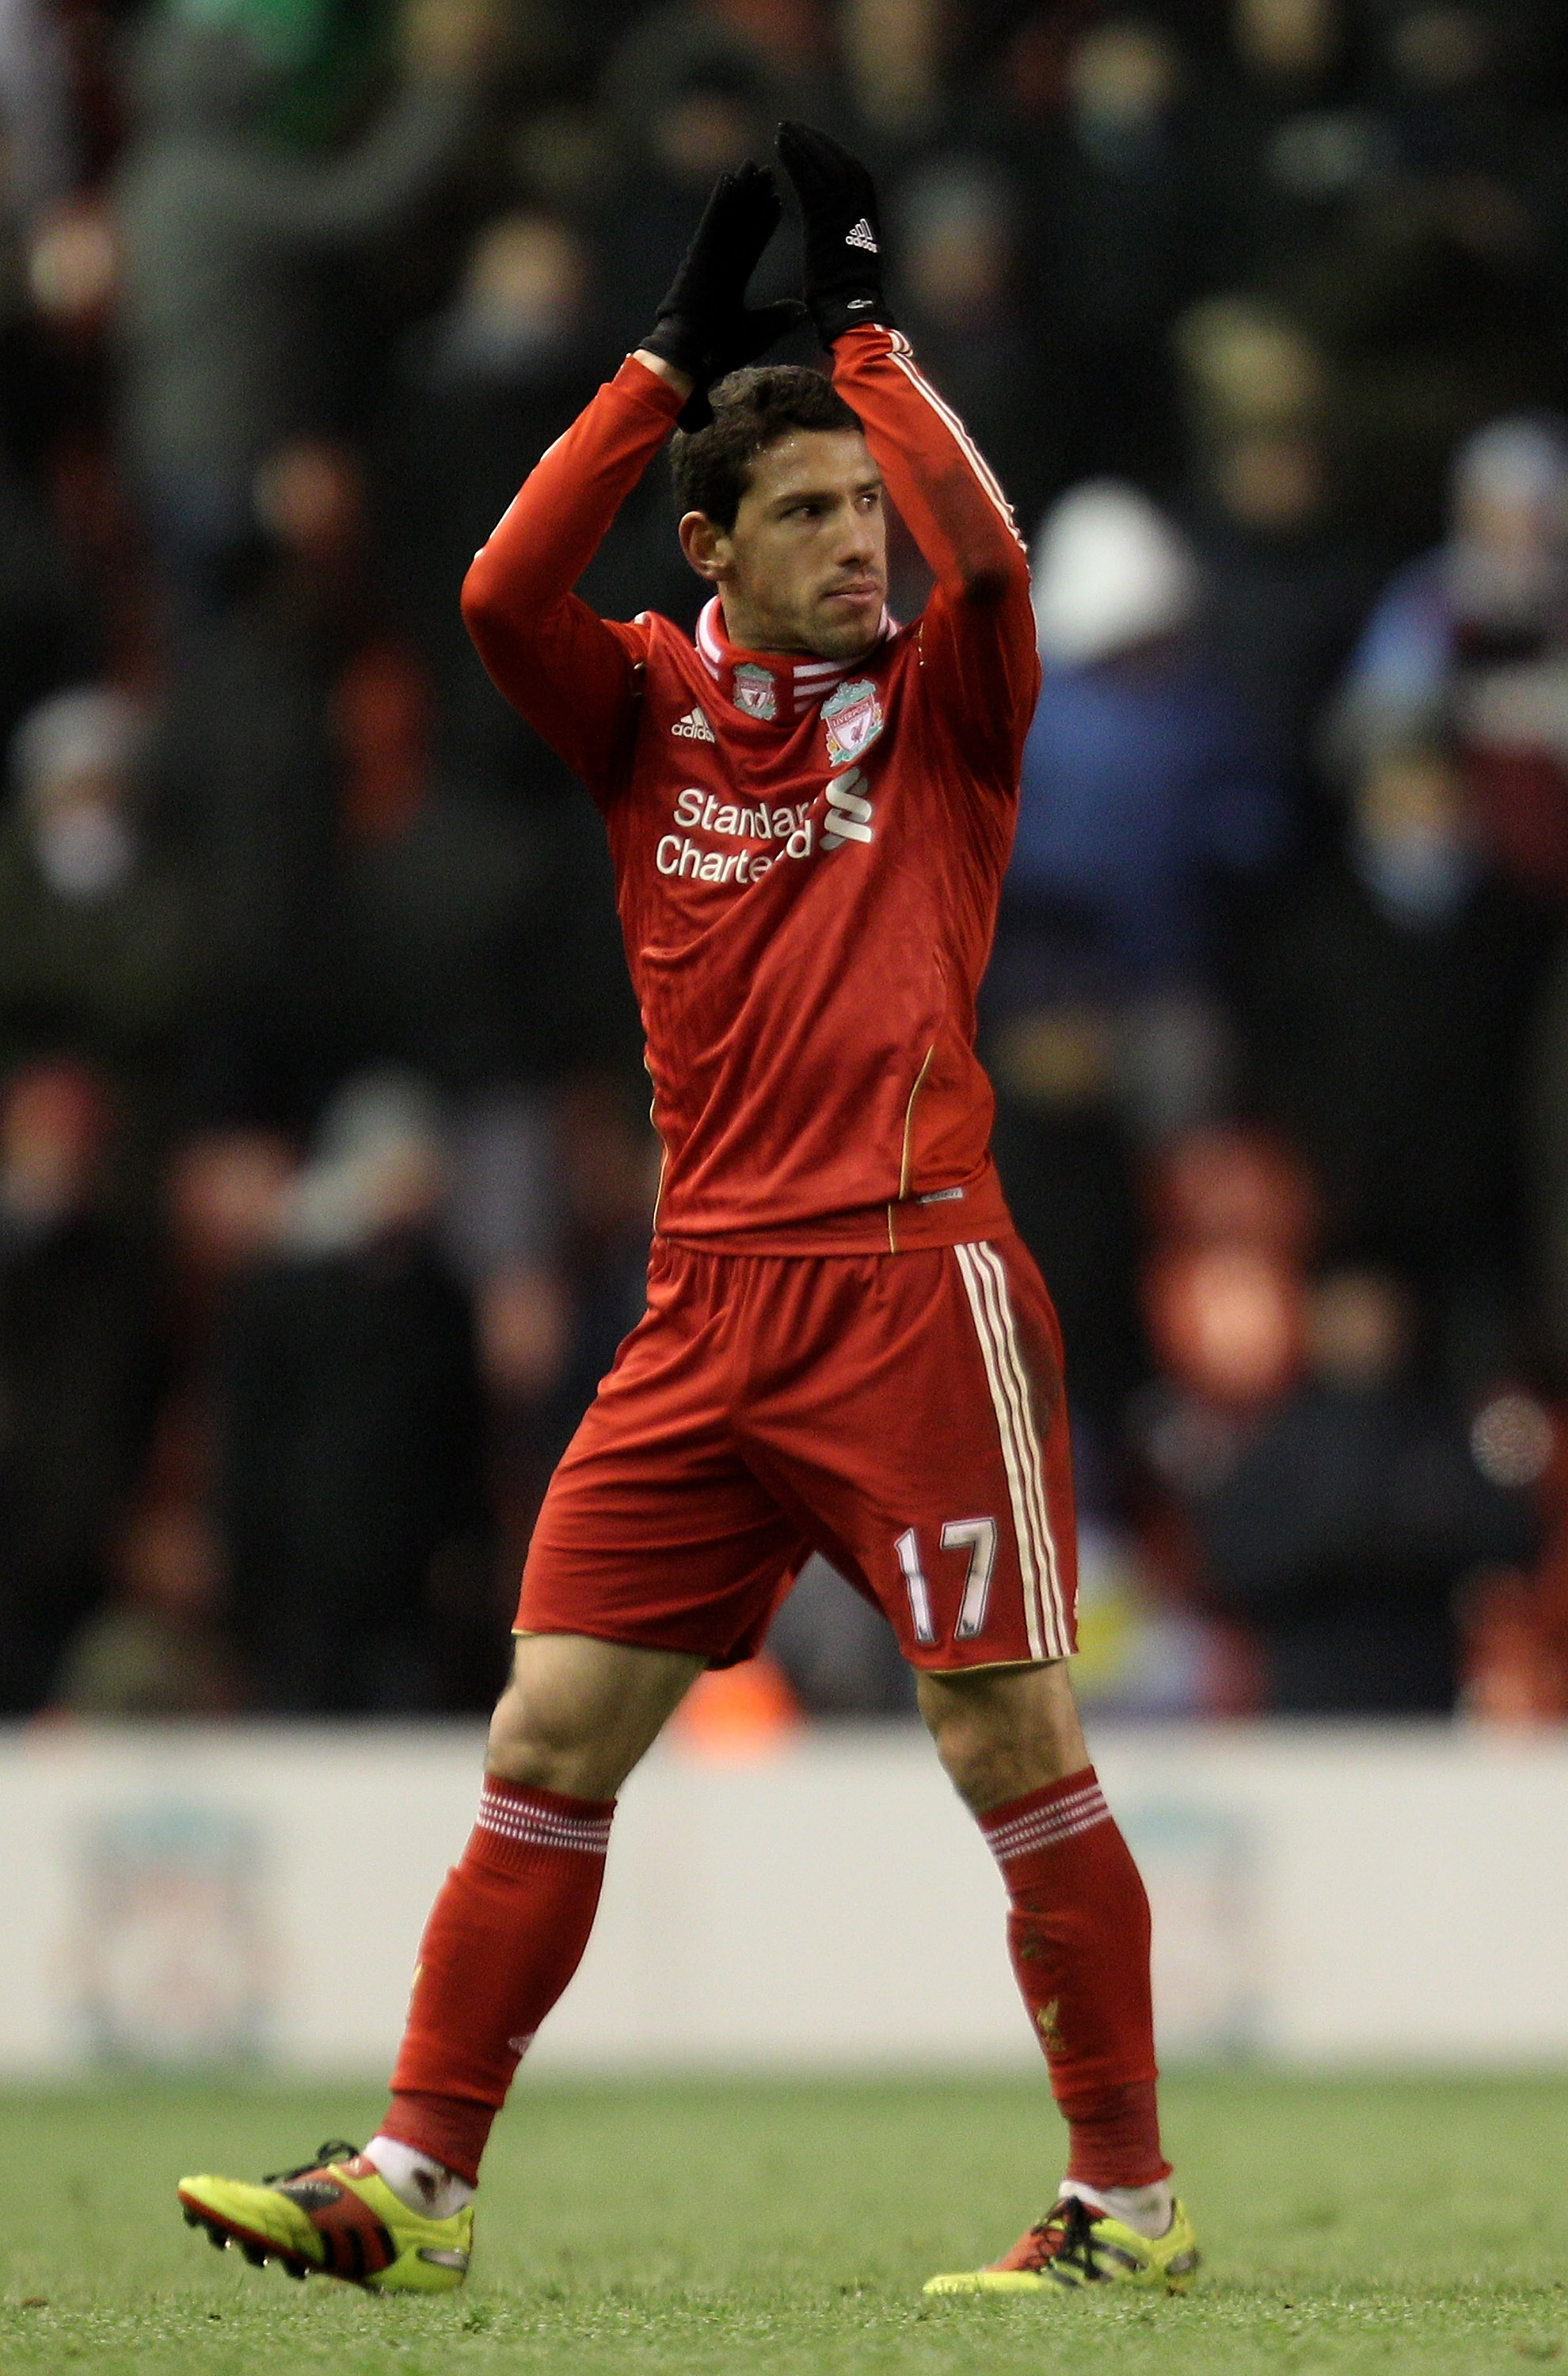 LIVERPOOL, ENGLAND - DECEMBER 06:   Maxi Rodriguez of Liverpool acknowledges the crowd during the Barclays Premier League match between Liverpool and Aston Villa at Anfield on December 6, 2010 in Liverpool, England. (Photo by Mark Thompson/Getty Images)